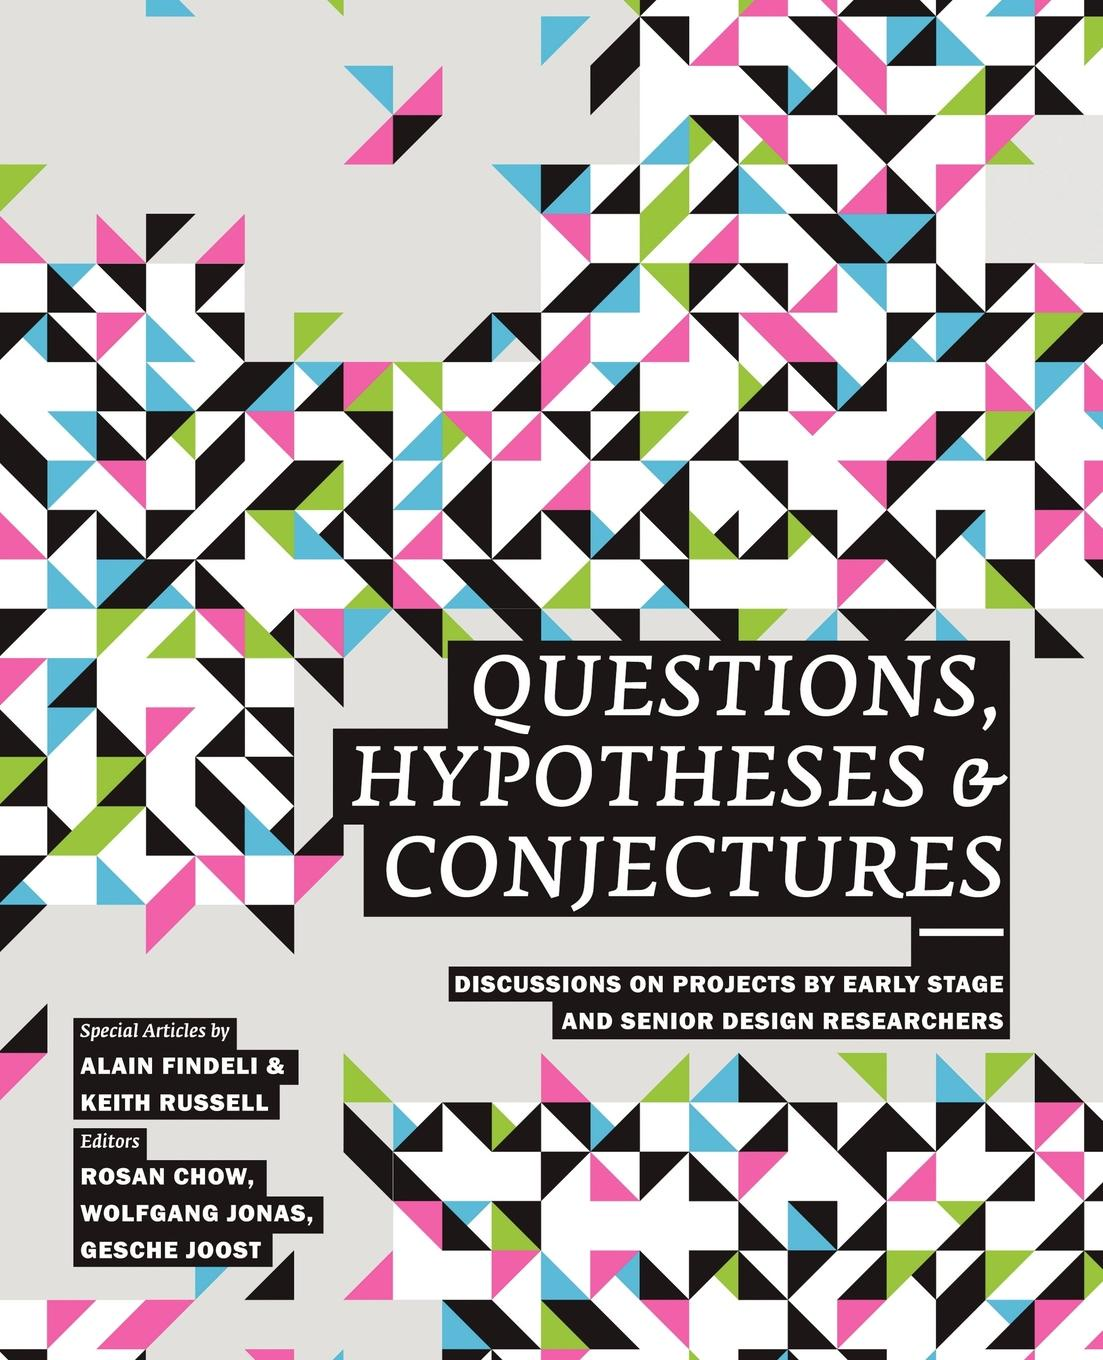 Design Research Network. Questions, Hypotheses . Conjectures